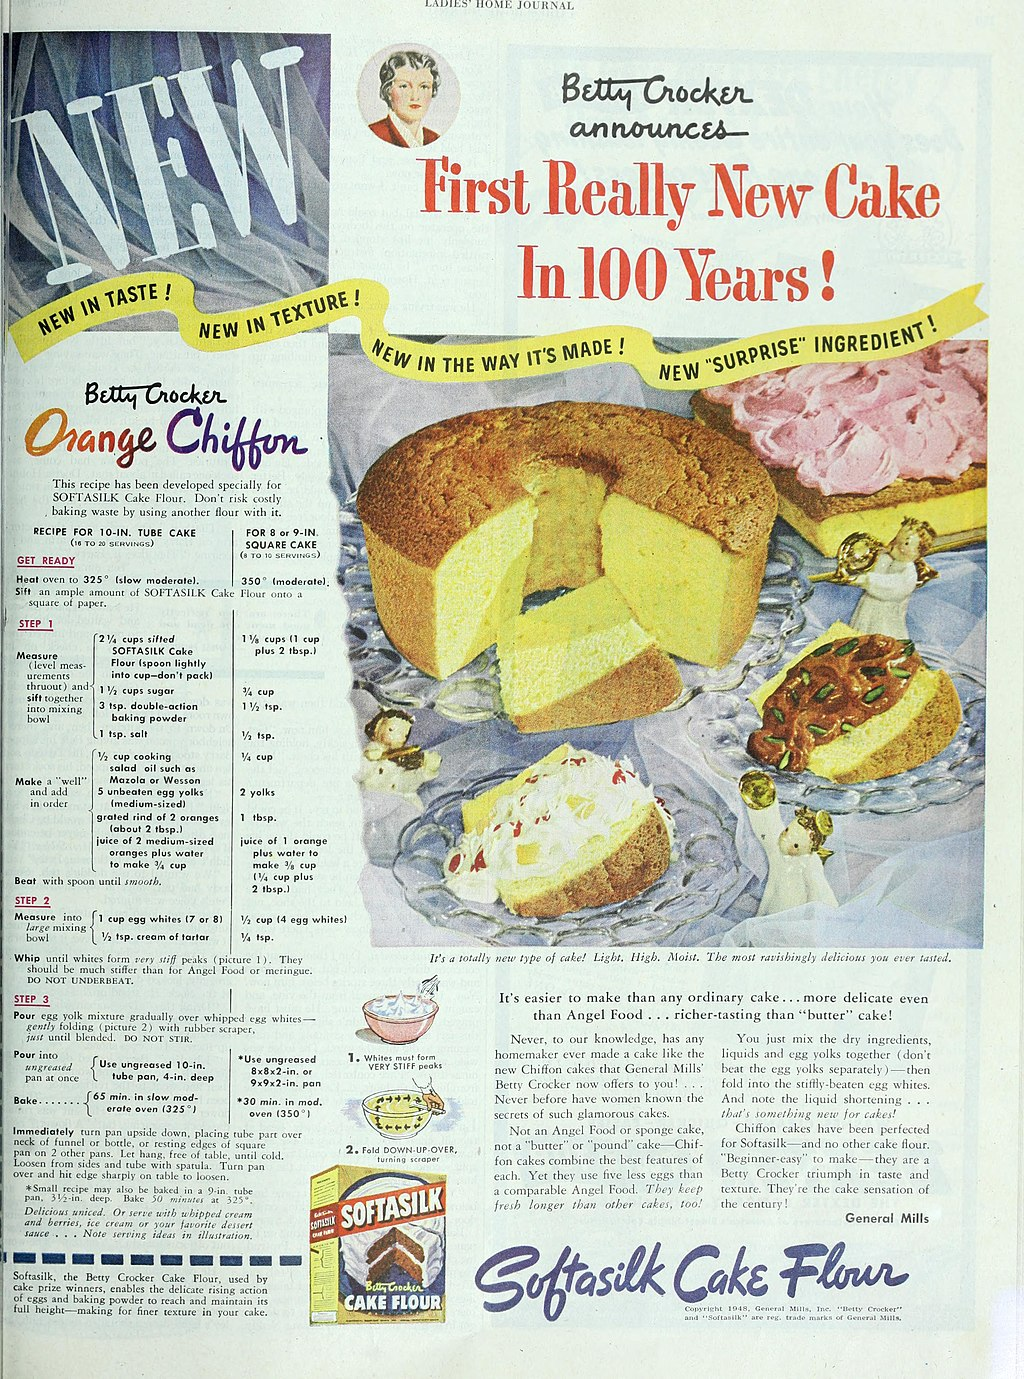 1024px-Betty_Crocker_announces_-_First_really_new_cake_in_100_years!,_1948.jpg